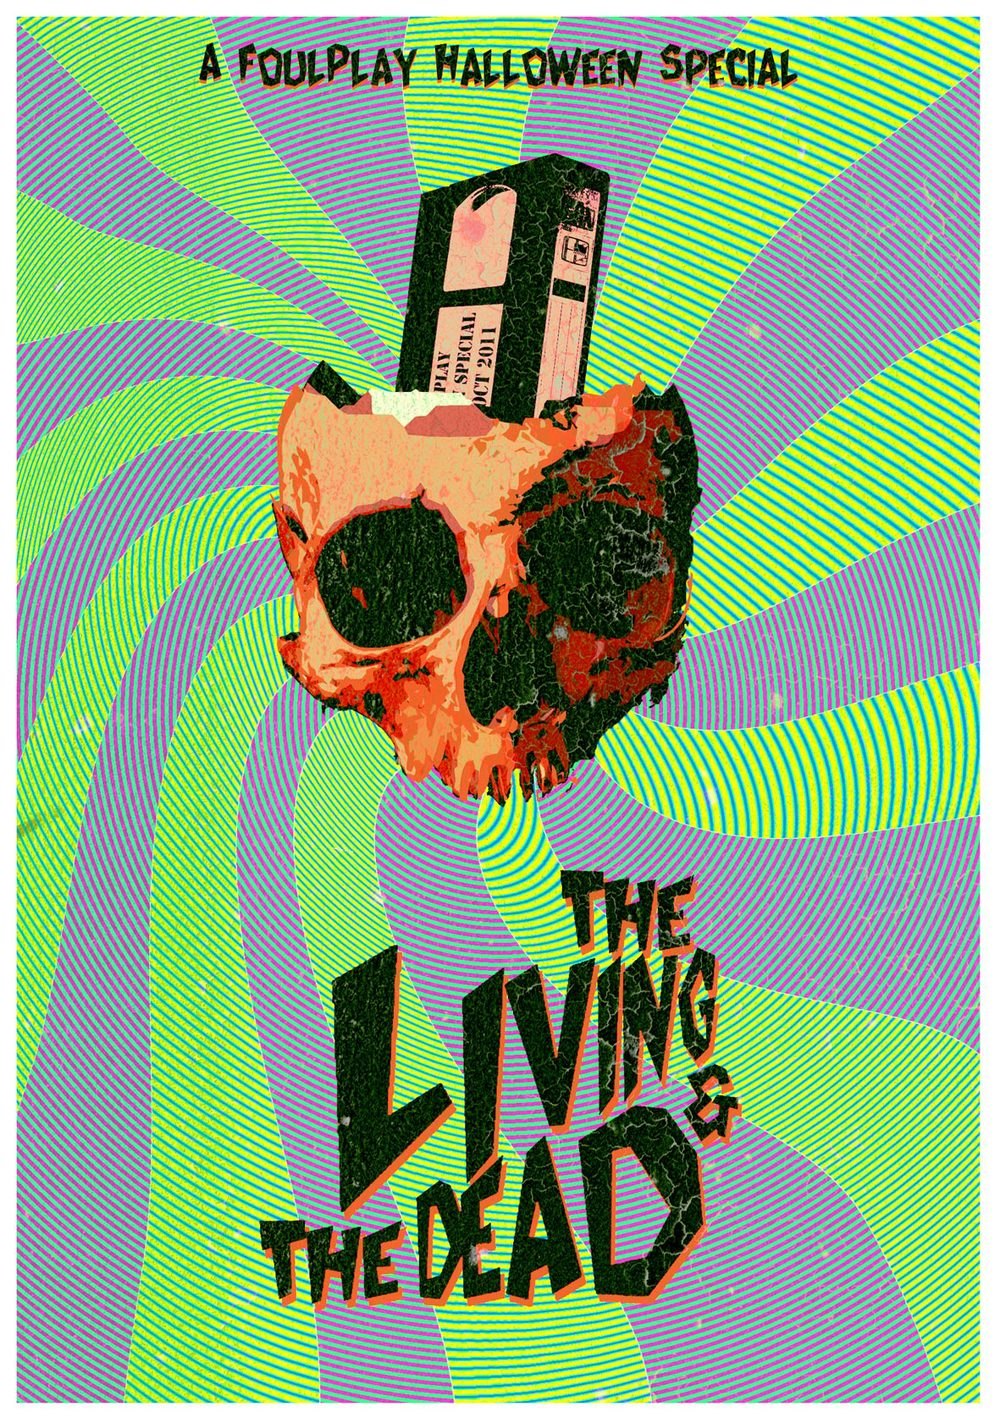 Flyer for the FoulPlay Halloween Special immersive theatre production 'The Living and the Dead'.